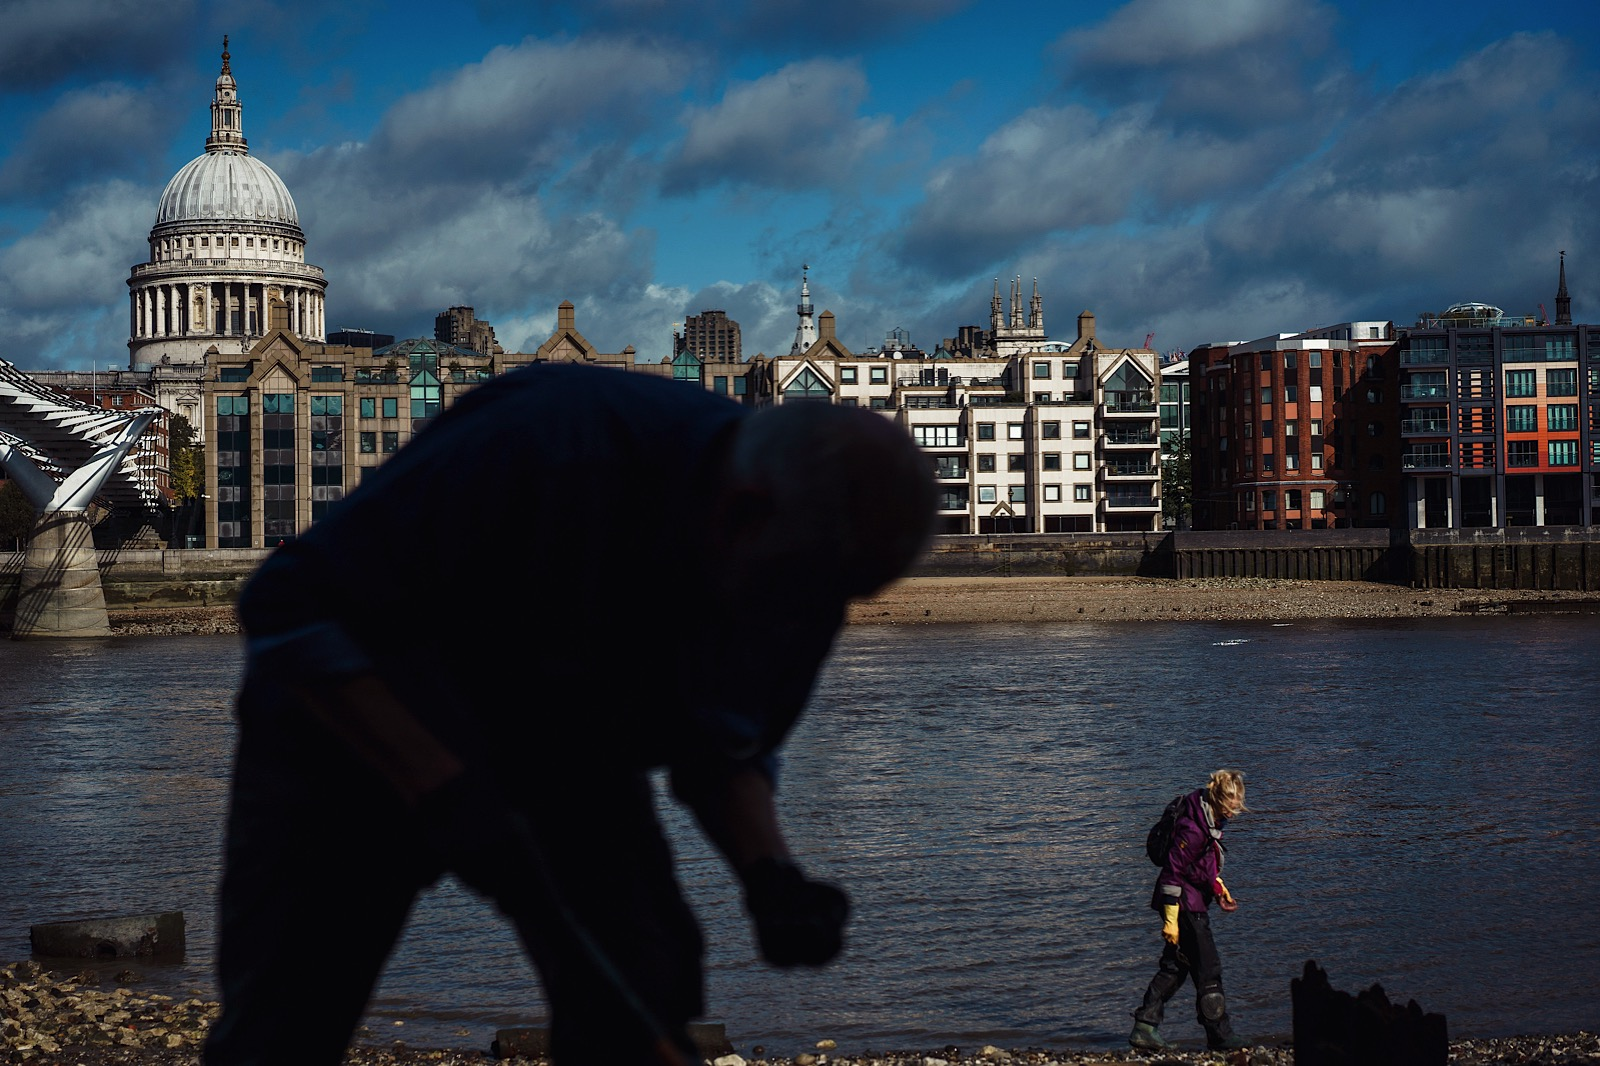 Mudlarkers searching the banks of the River Thames with St Pauls in background